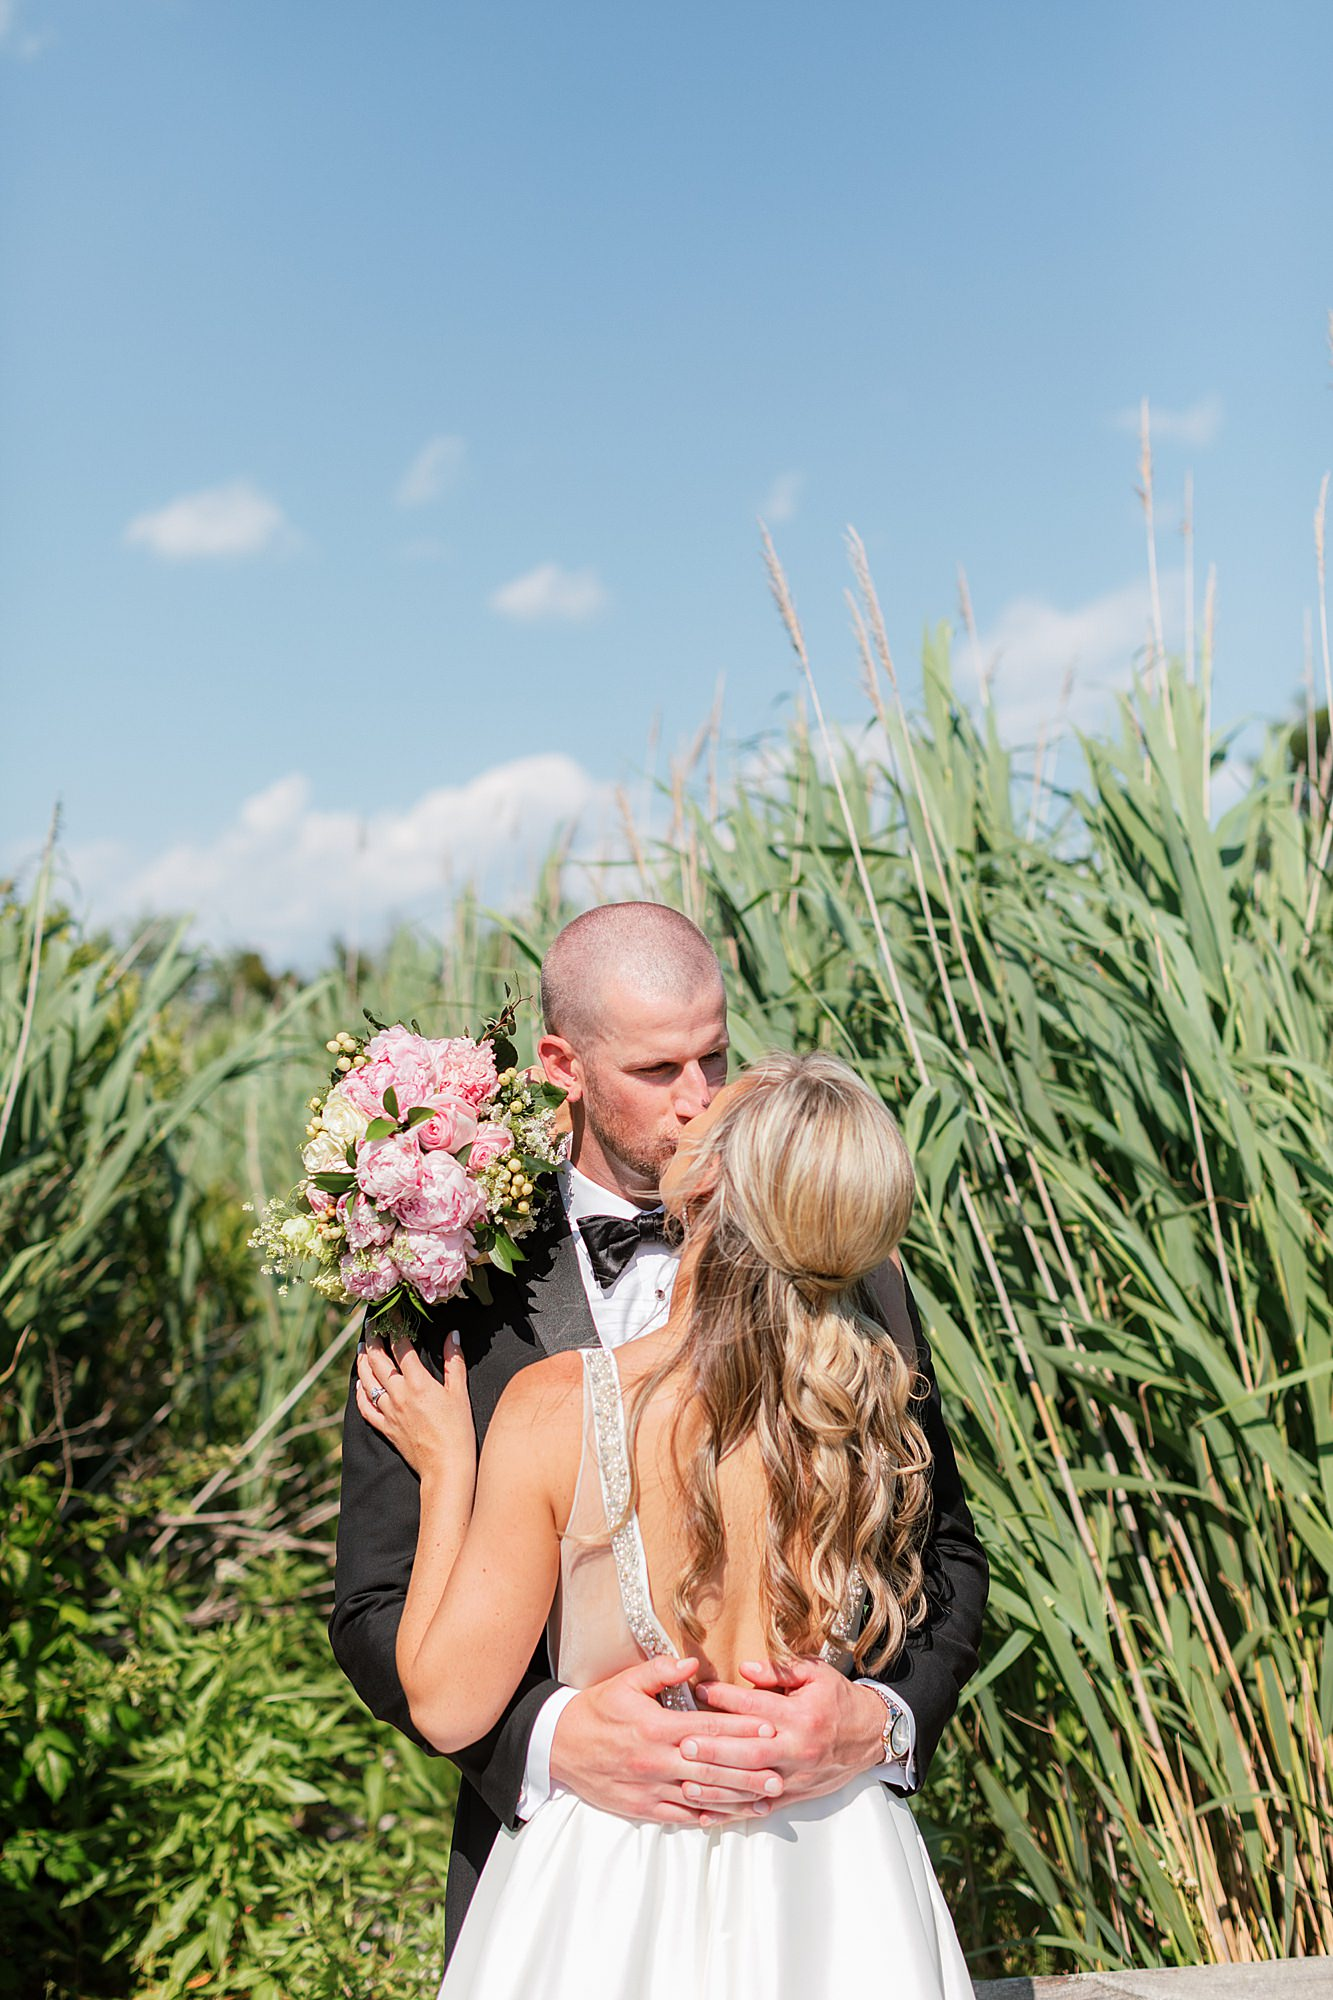 Natural and Vibrant Wedding Photography at the Reeds in Stone Harbor NJ by Magdalena Studios 0043